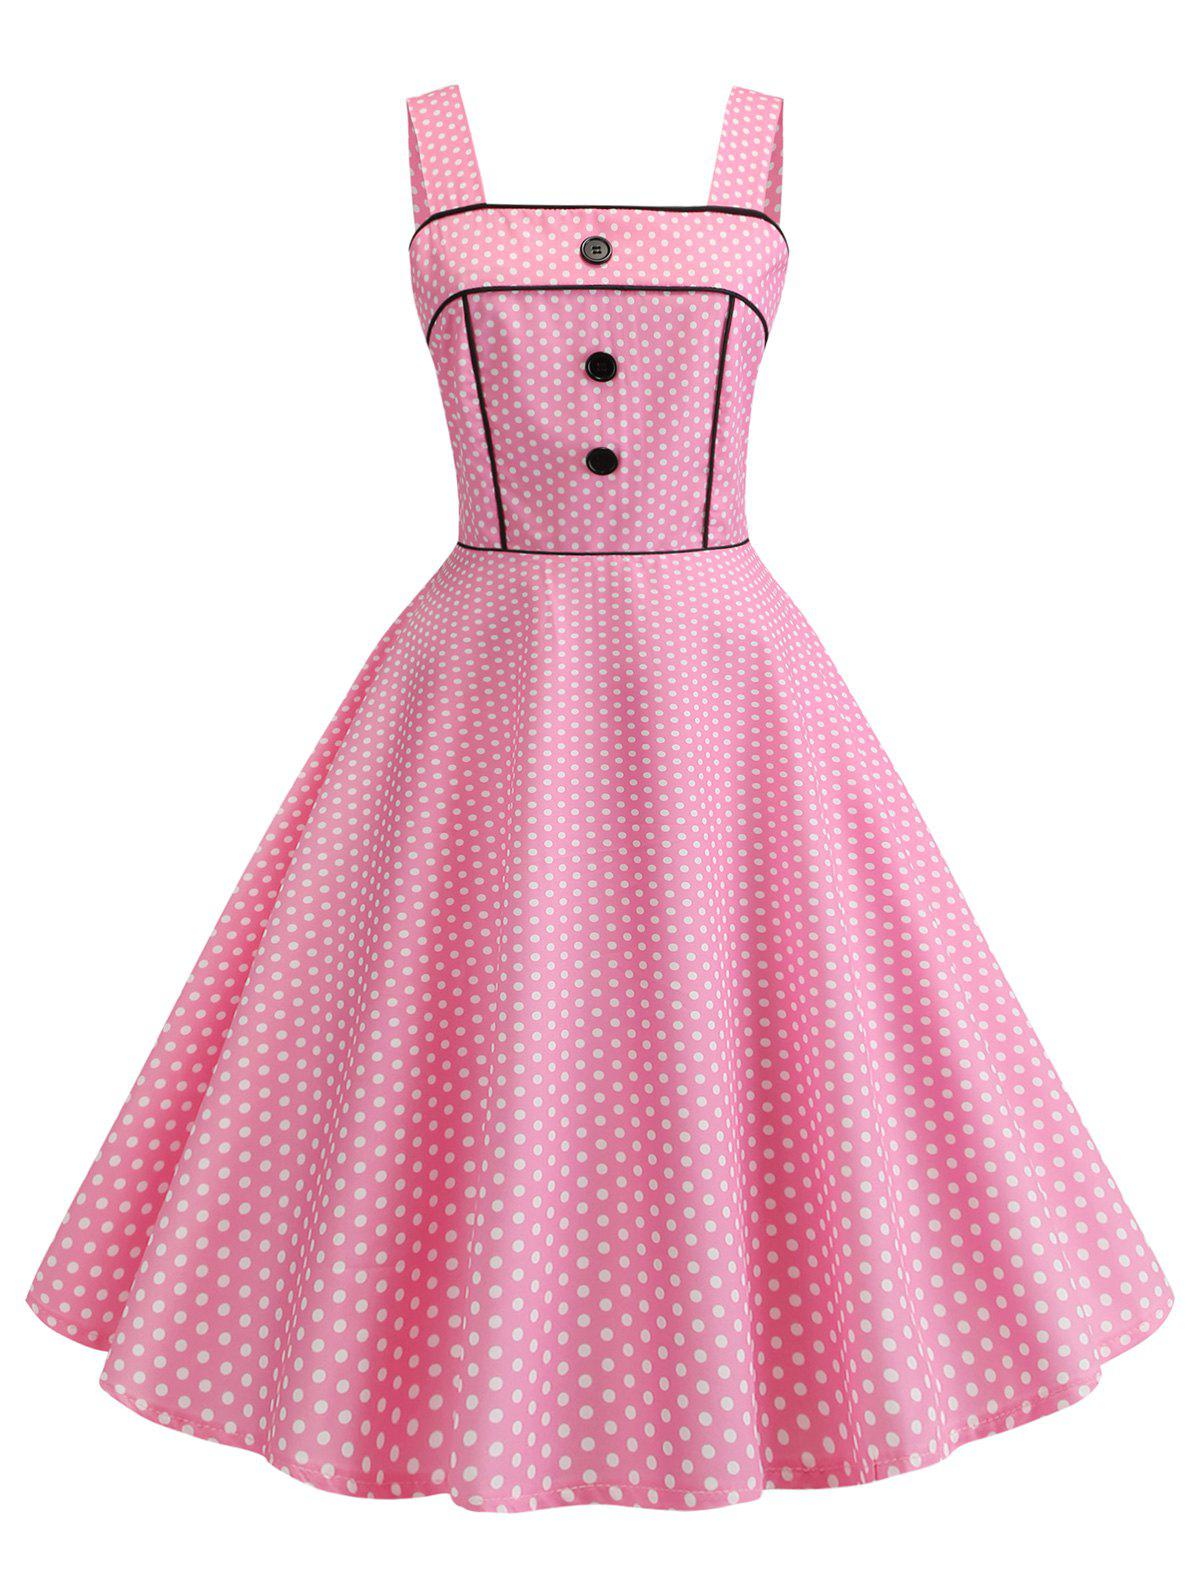 Online Polka Dot Square Neck Party Dress